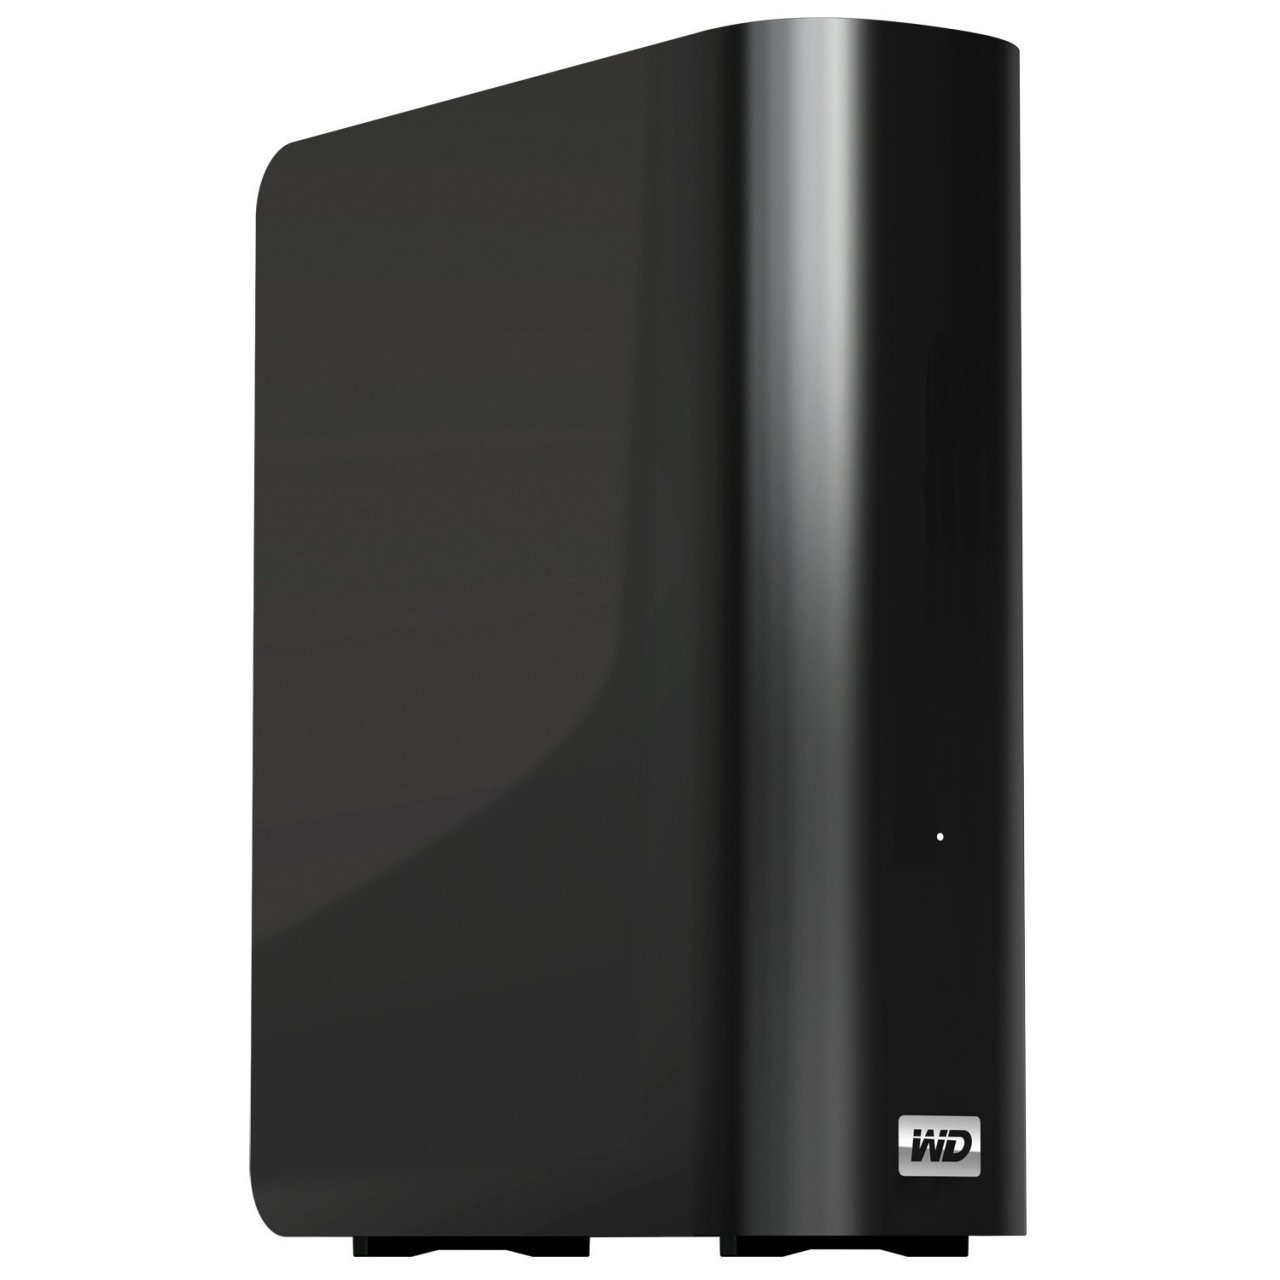 Western Digital My Book 4TB External Hard Drive Storage USB 3.0 (File Backup and Storage) Put your digital life on the high capacity My Book desktop hard drive with ultra-fast USB 3.0 connectivity. WD SmartWare automatic backup software and password protection with hardware encryption ensure your data is protected. Ideal for: Transferring files up to three times faster when connected to a USB 3.0 port Connecting with your USB 2.0 port today and using with USB 3.0 when you're ready Protecting your data with automatic, continuous backup Adding extra storage space for photos, videos and music Securing private or sensitive data with password protection and hardware encryption (vía Amazon)